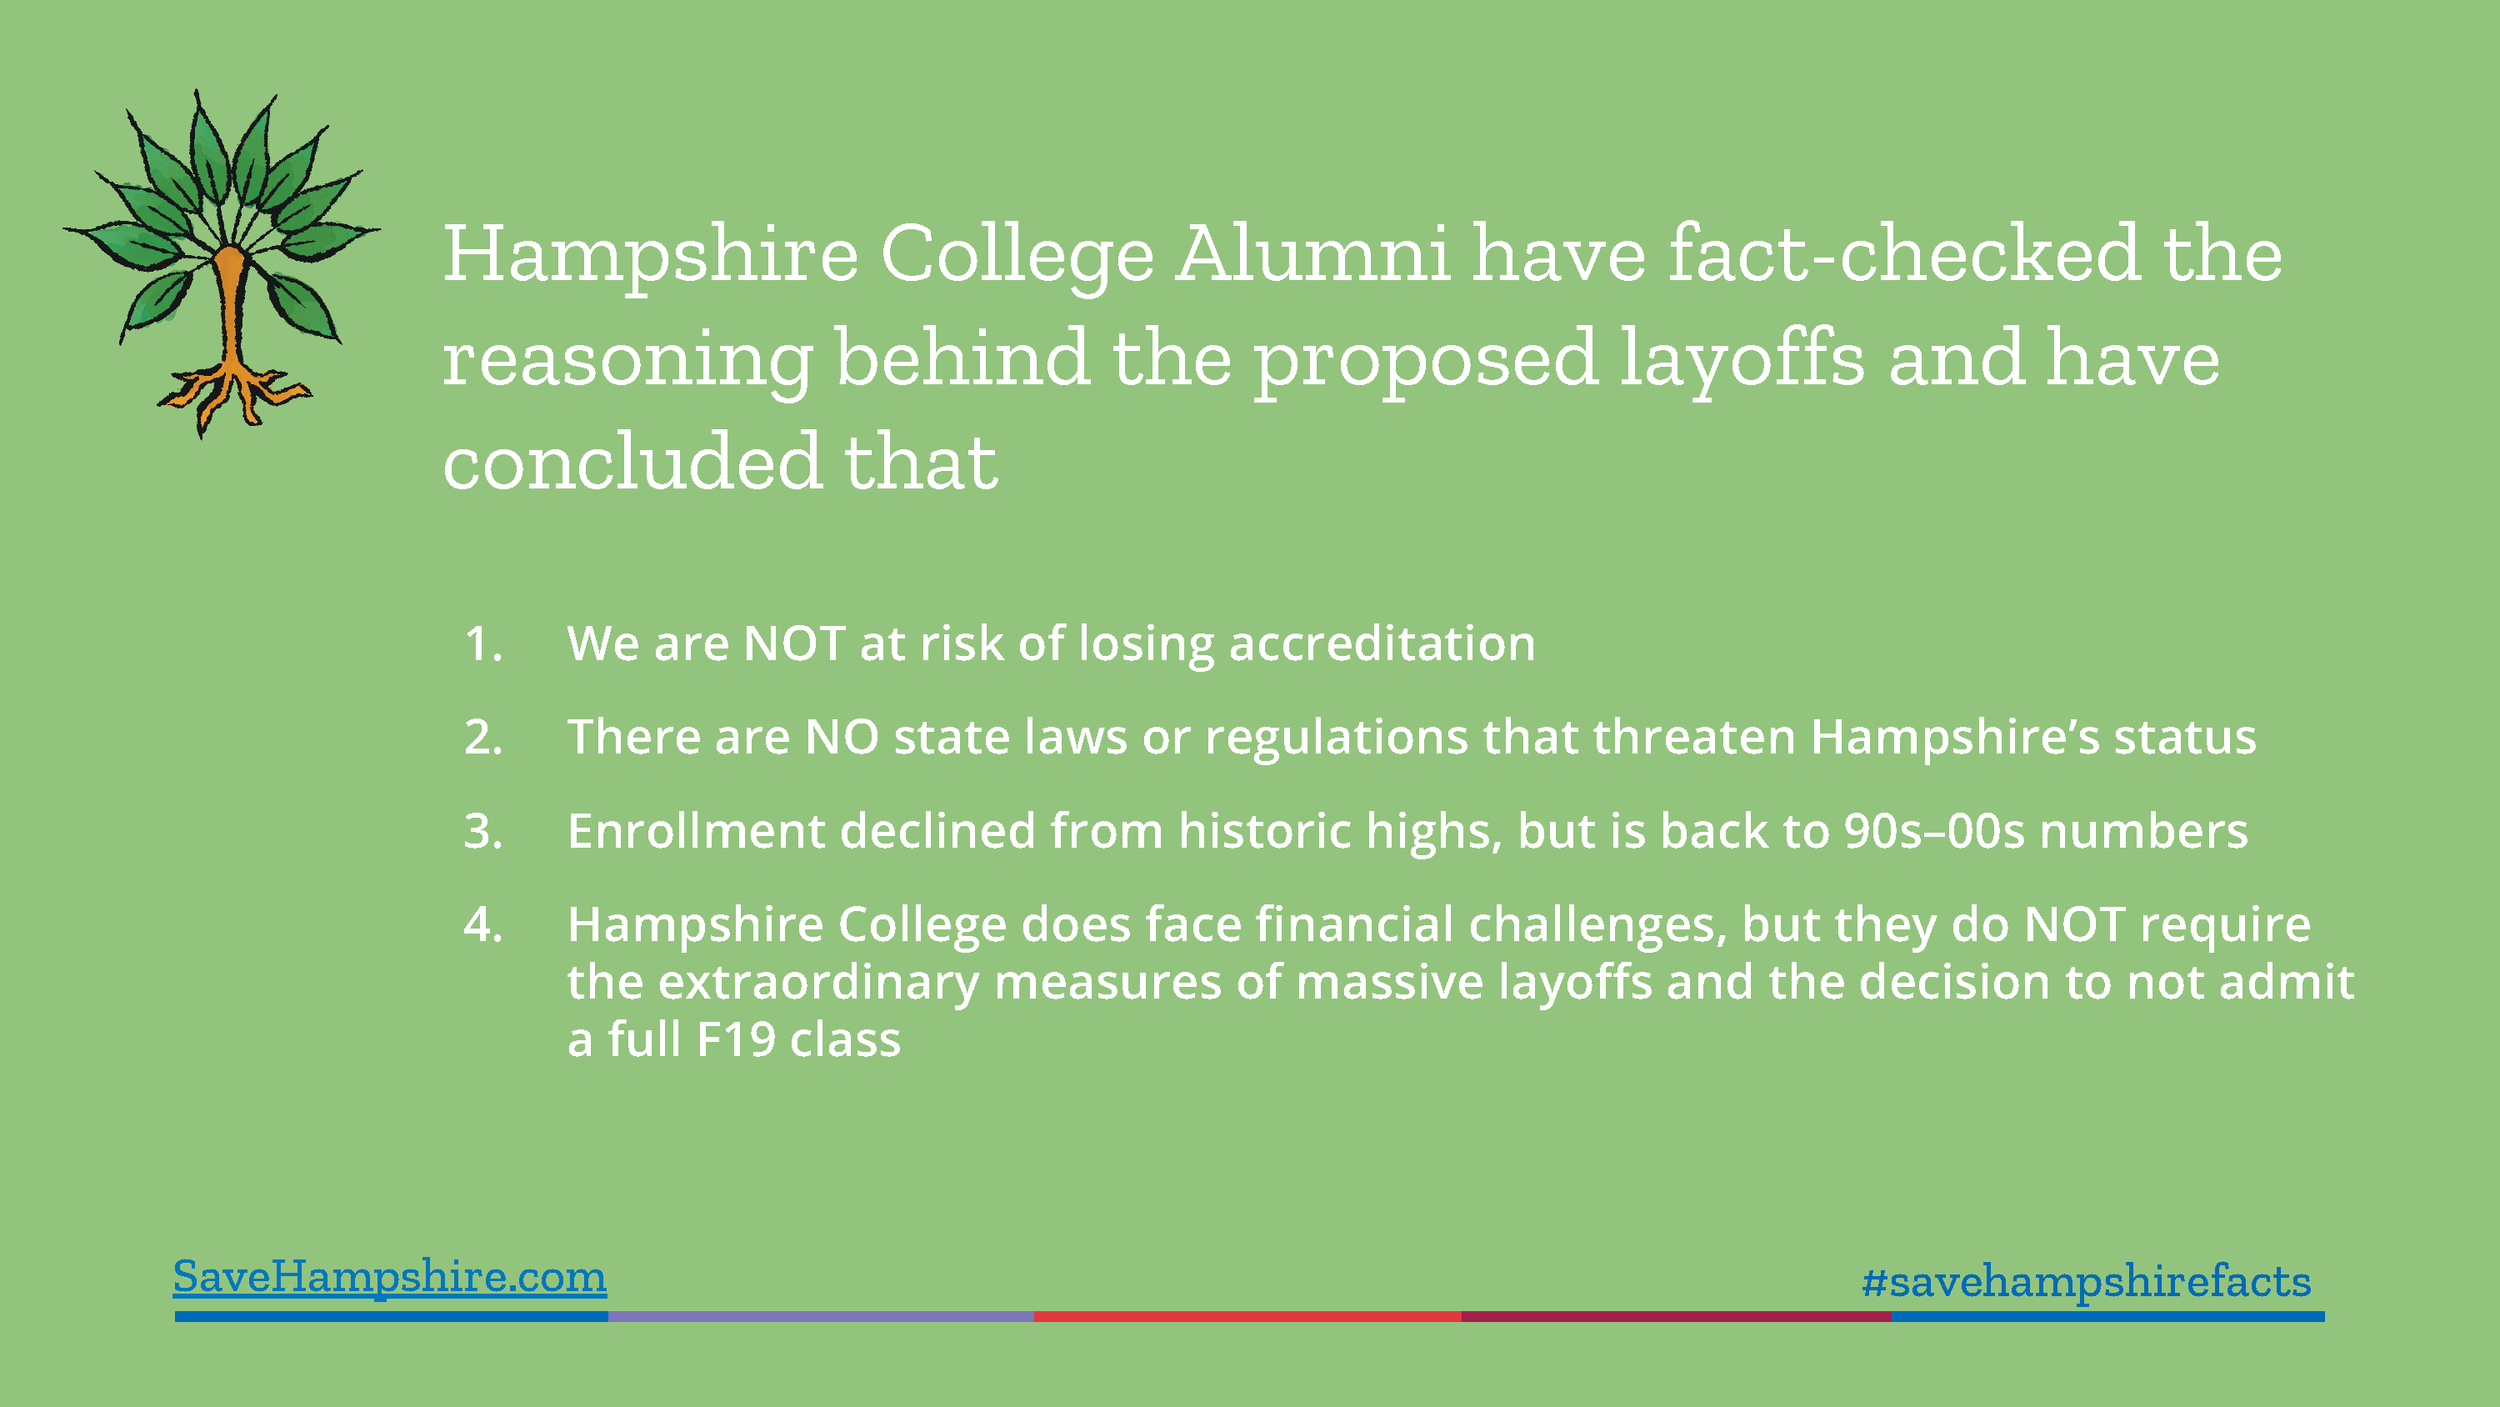 savehampshire facts 01.png